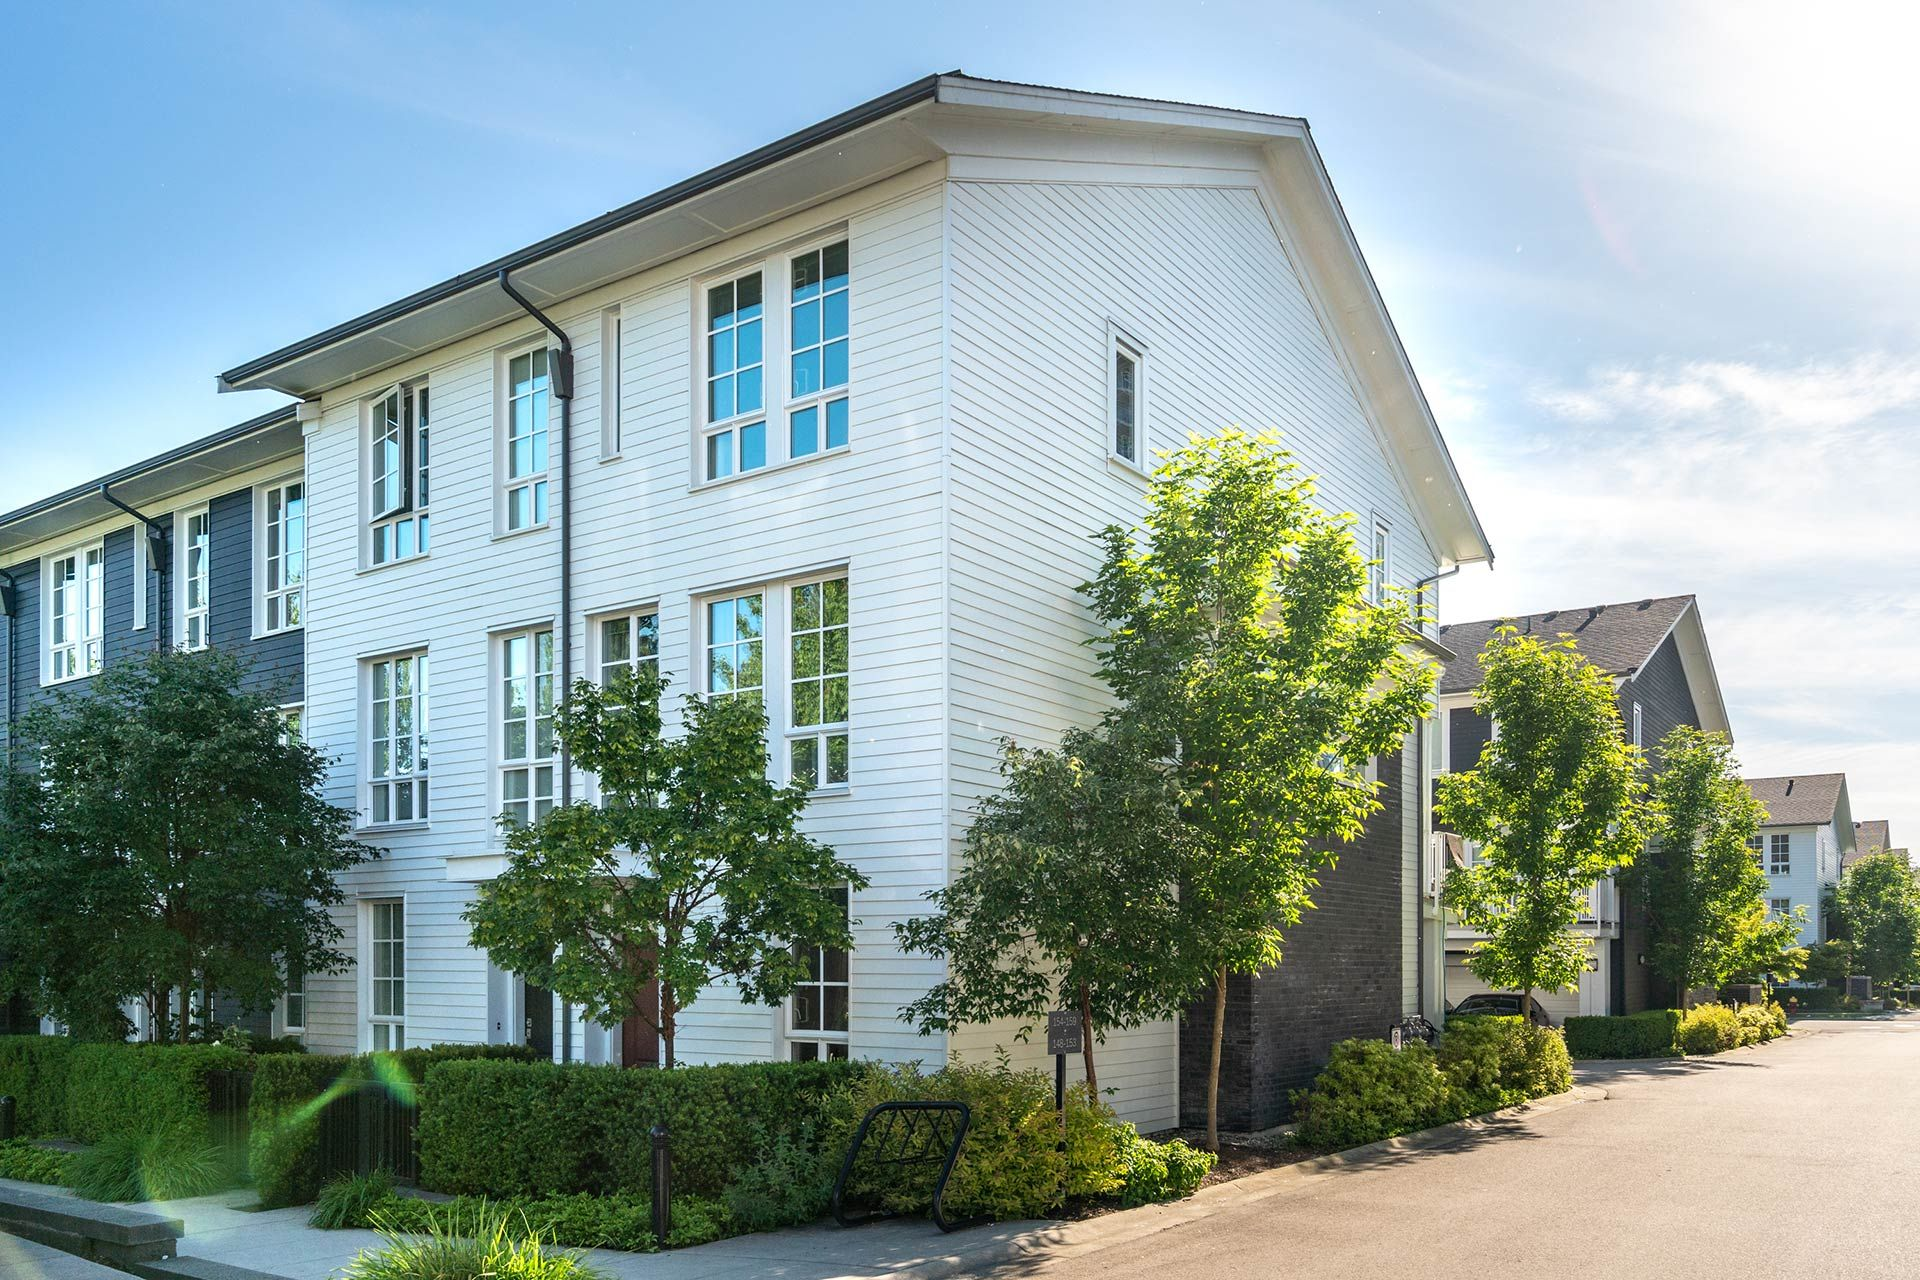 """Photo 42: Photos: 154 548 FOSTER Avenue in Coquitlam: Coquitlam West Townhouse for sale in """"BLACK + WHITE"""" : MLS®# R2587208"""